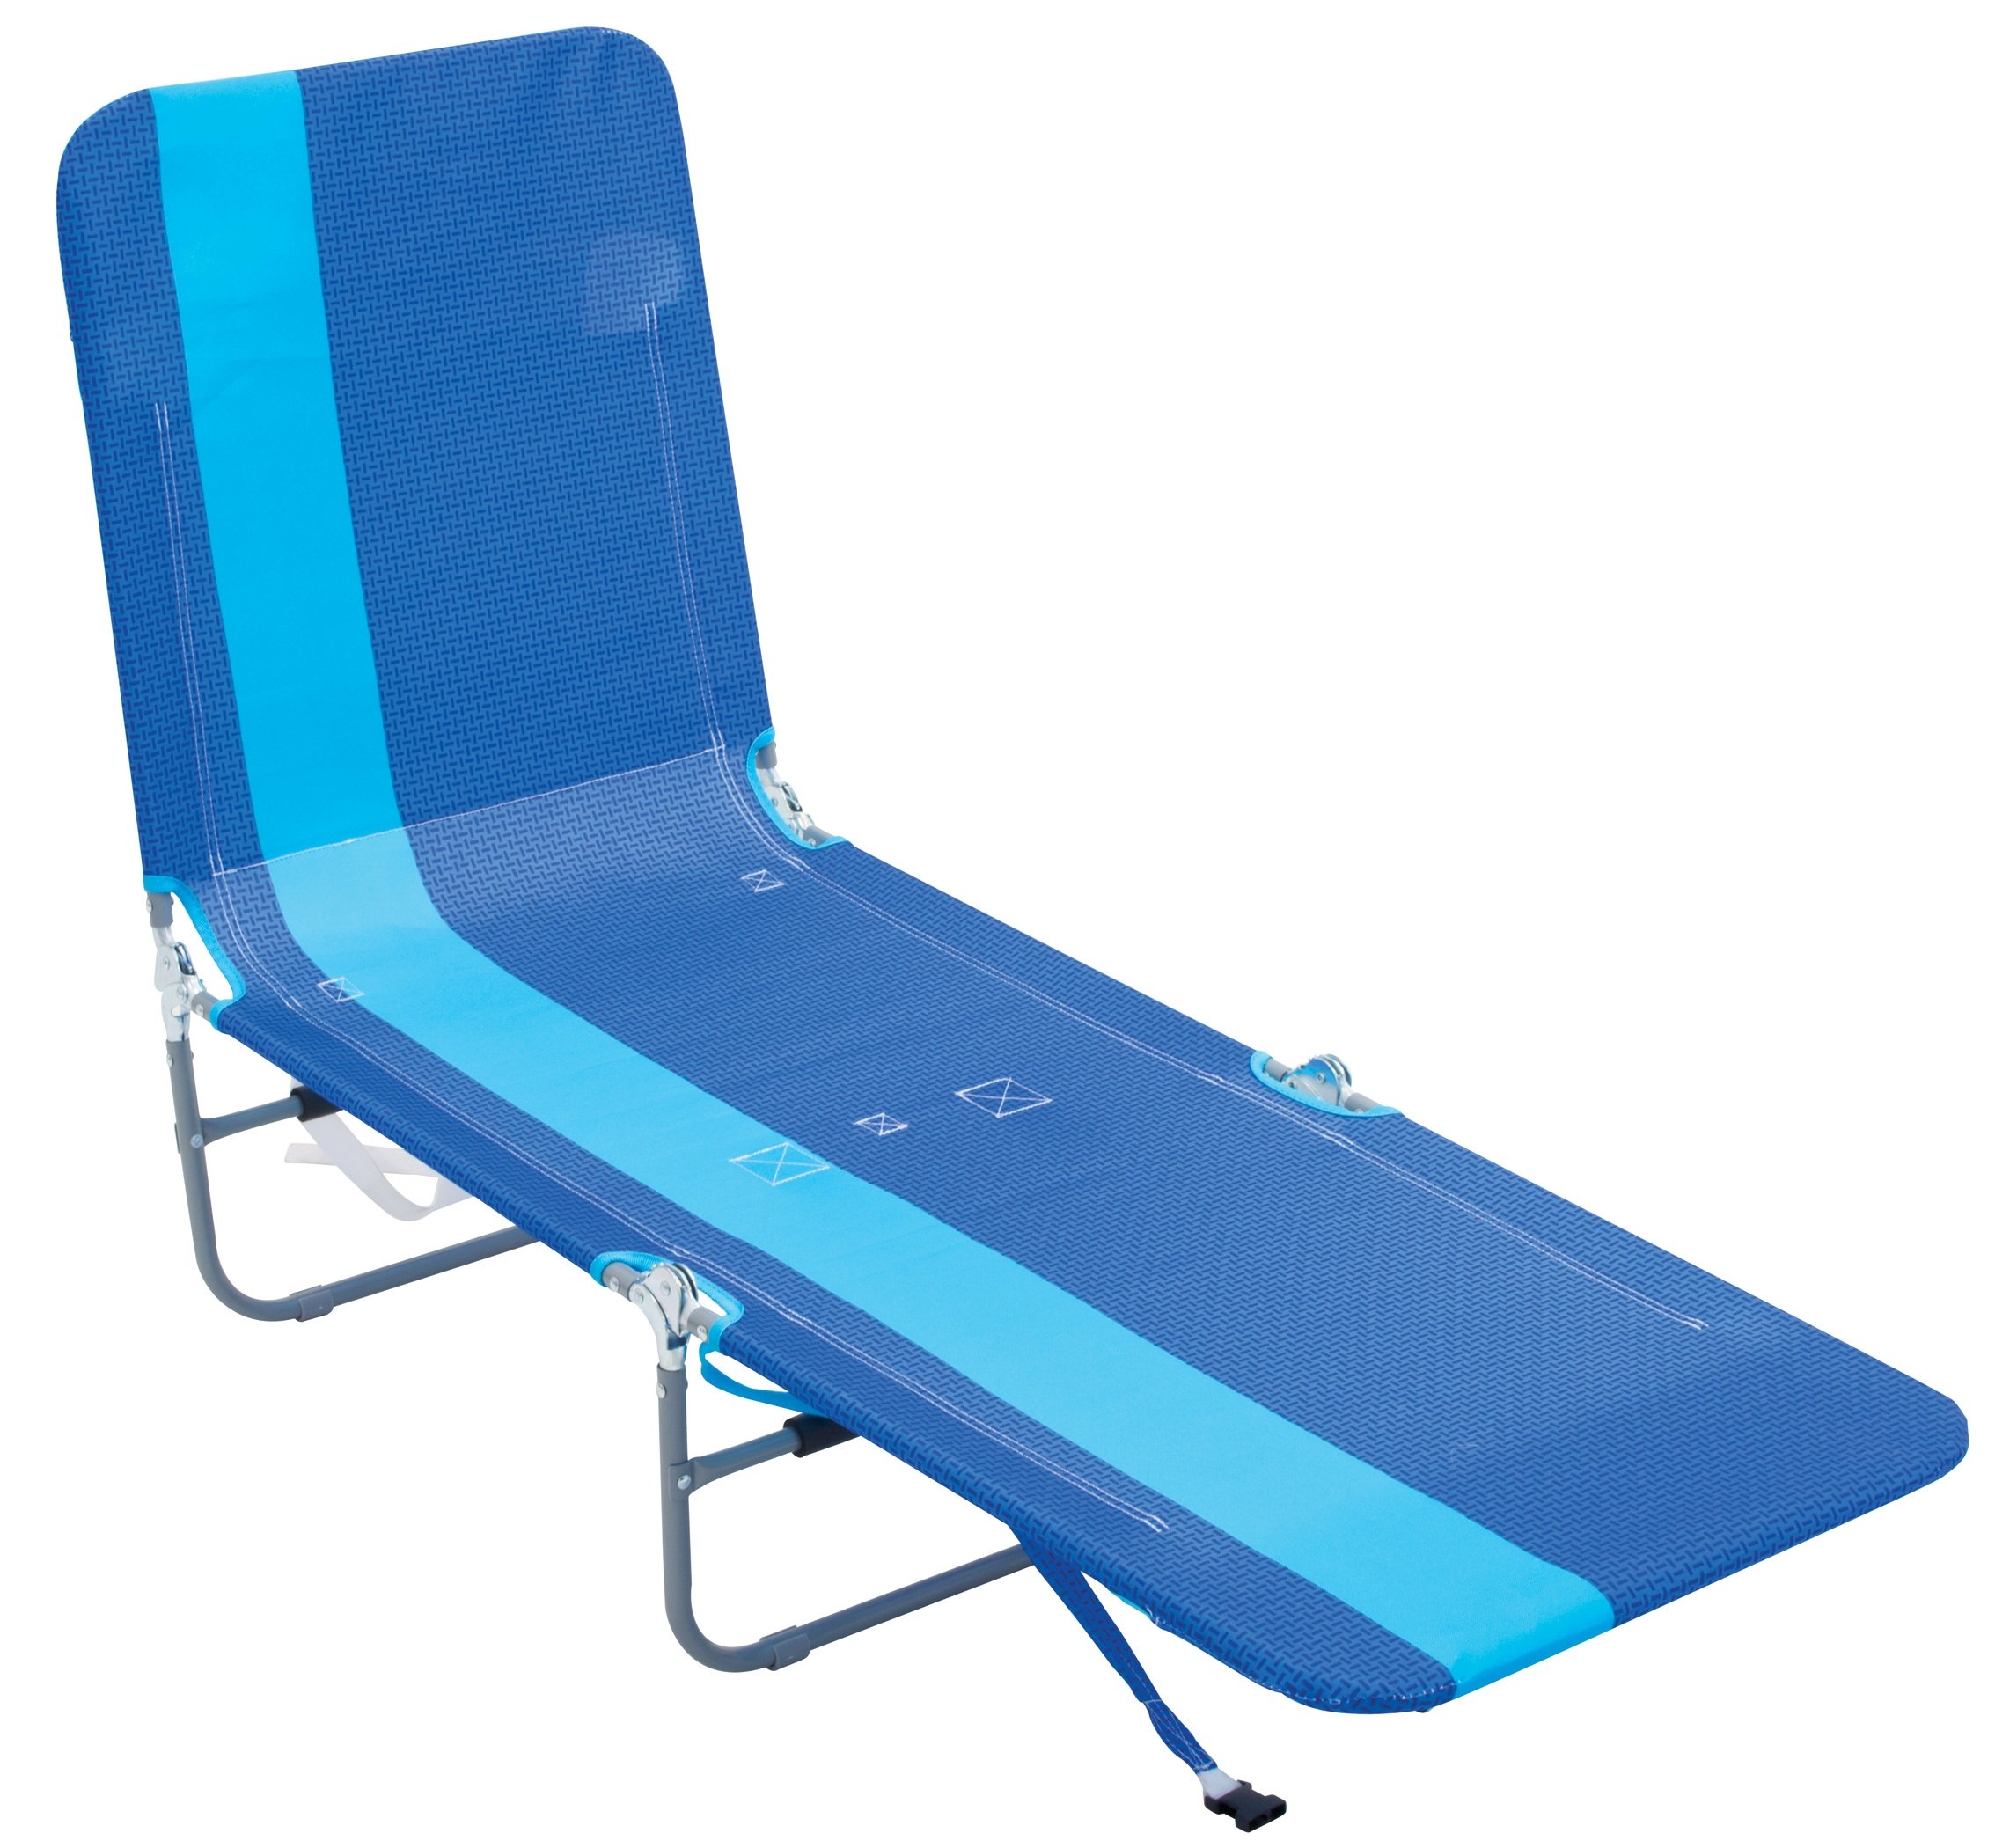 Rio Beach Portable Folding Backpack Beach Lounge Chair with Backpack Straps and Storage Pouch by RIO Gear